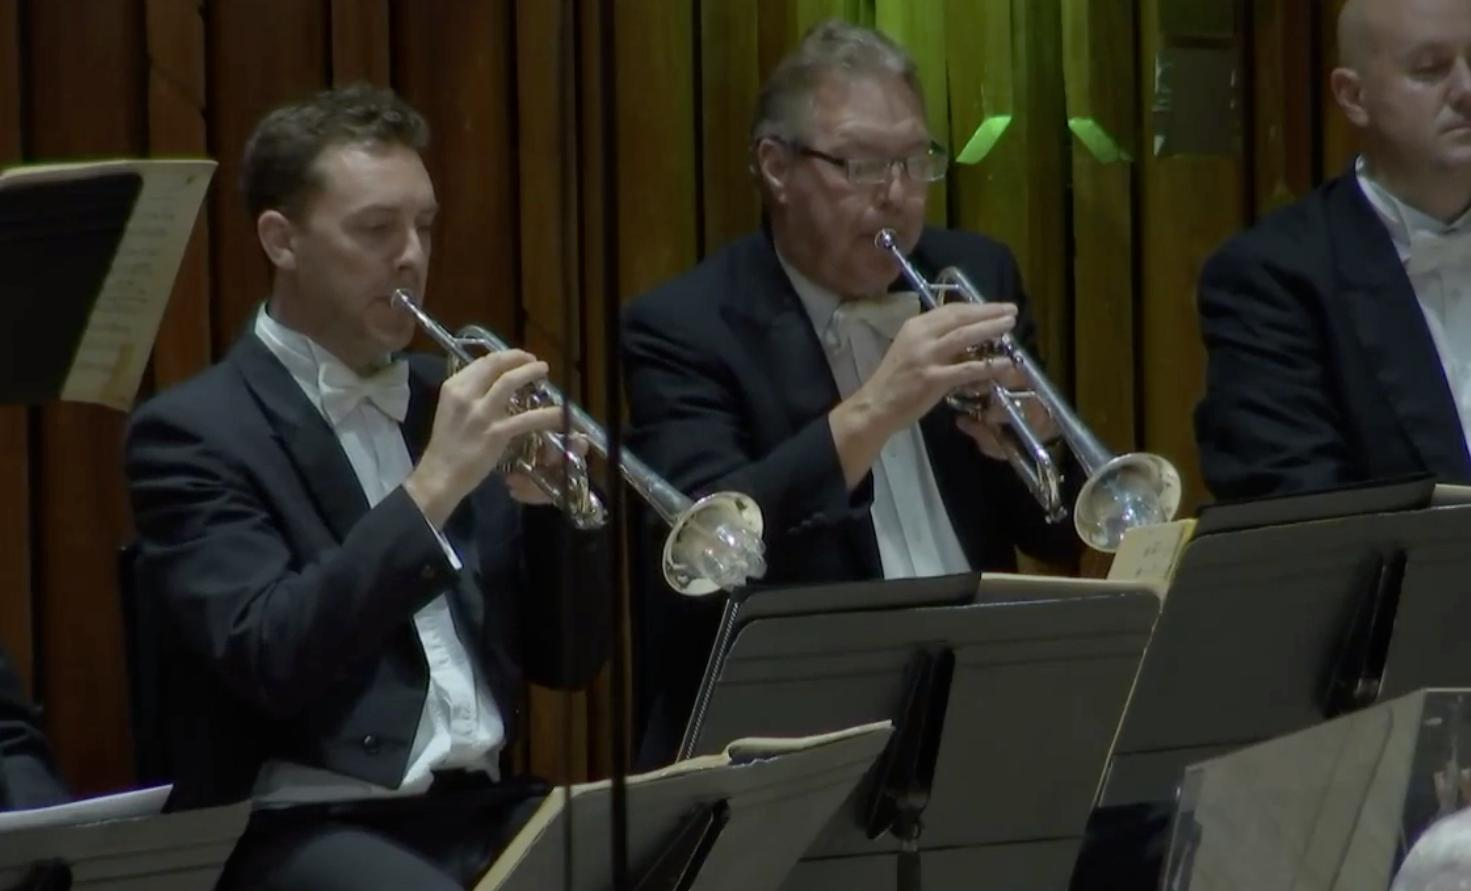 London Symphony Orchestra trumpeters play with pla